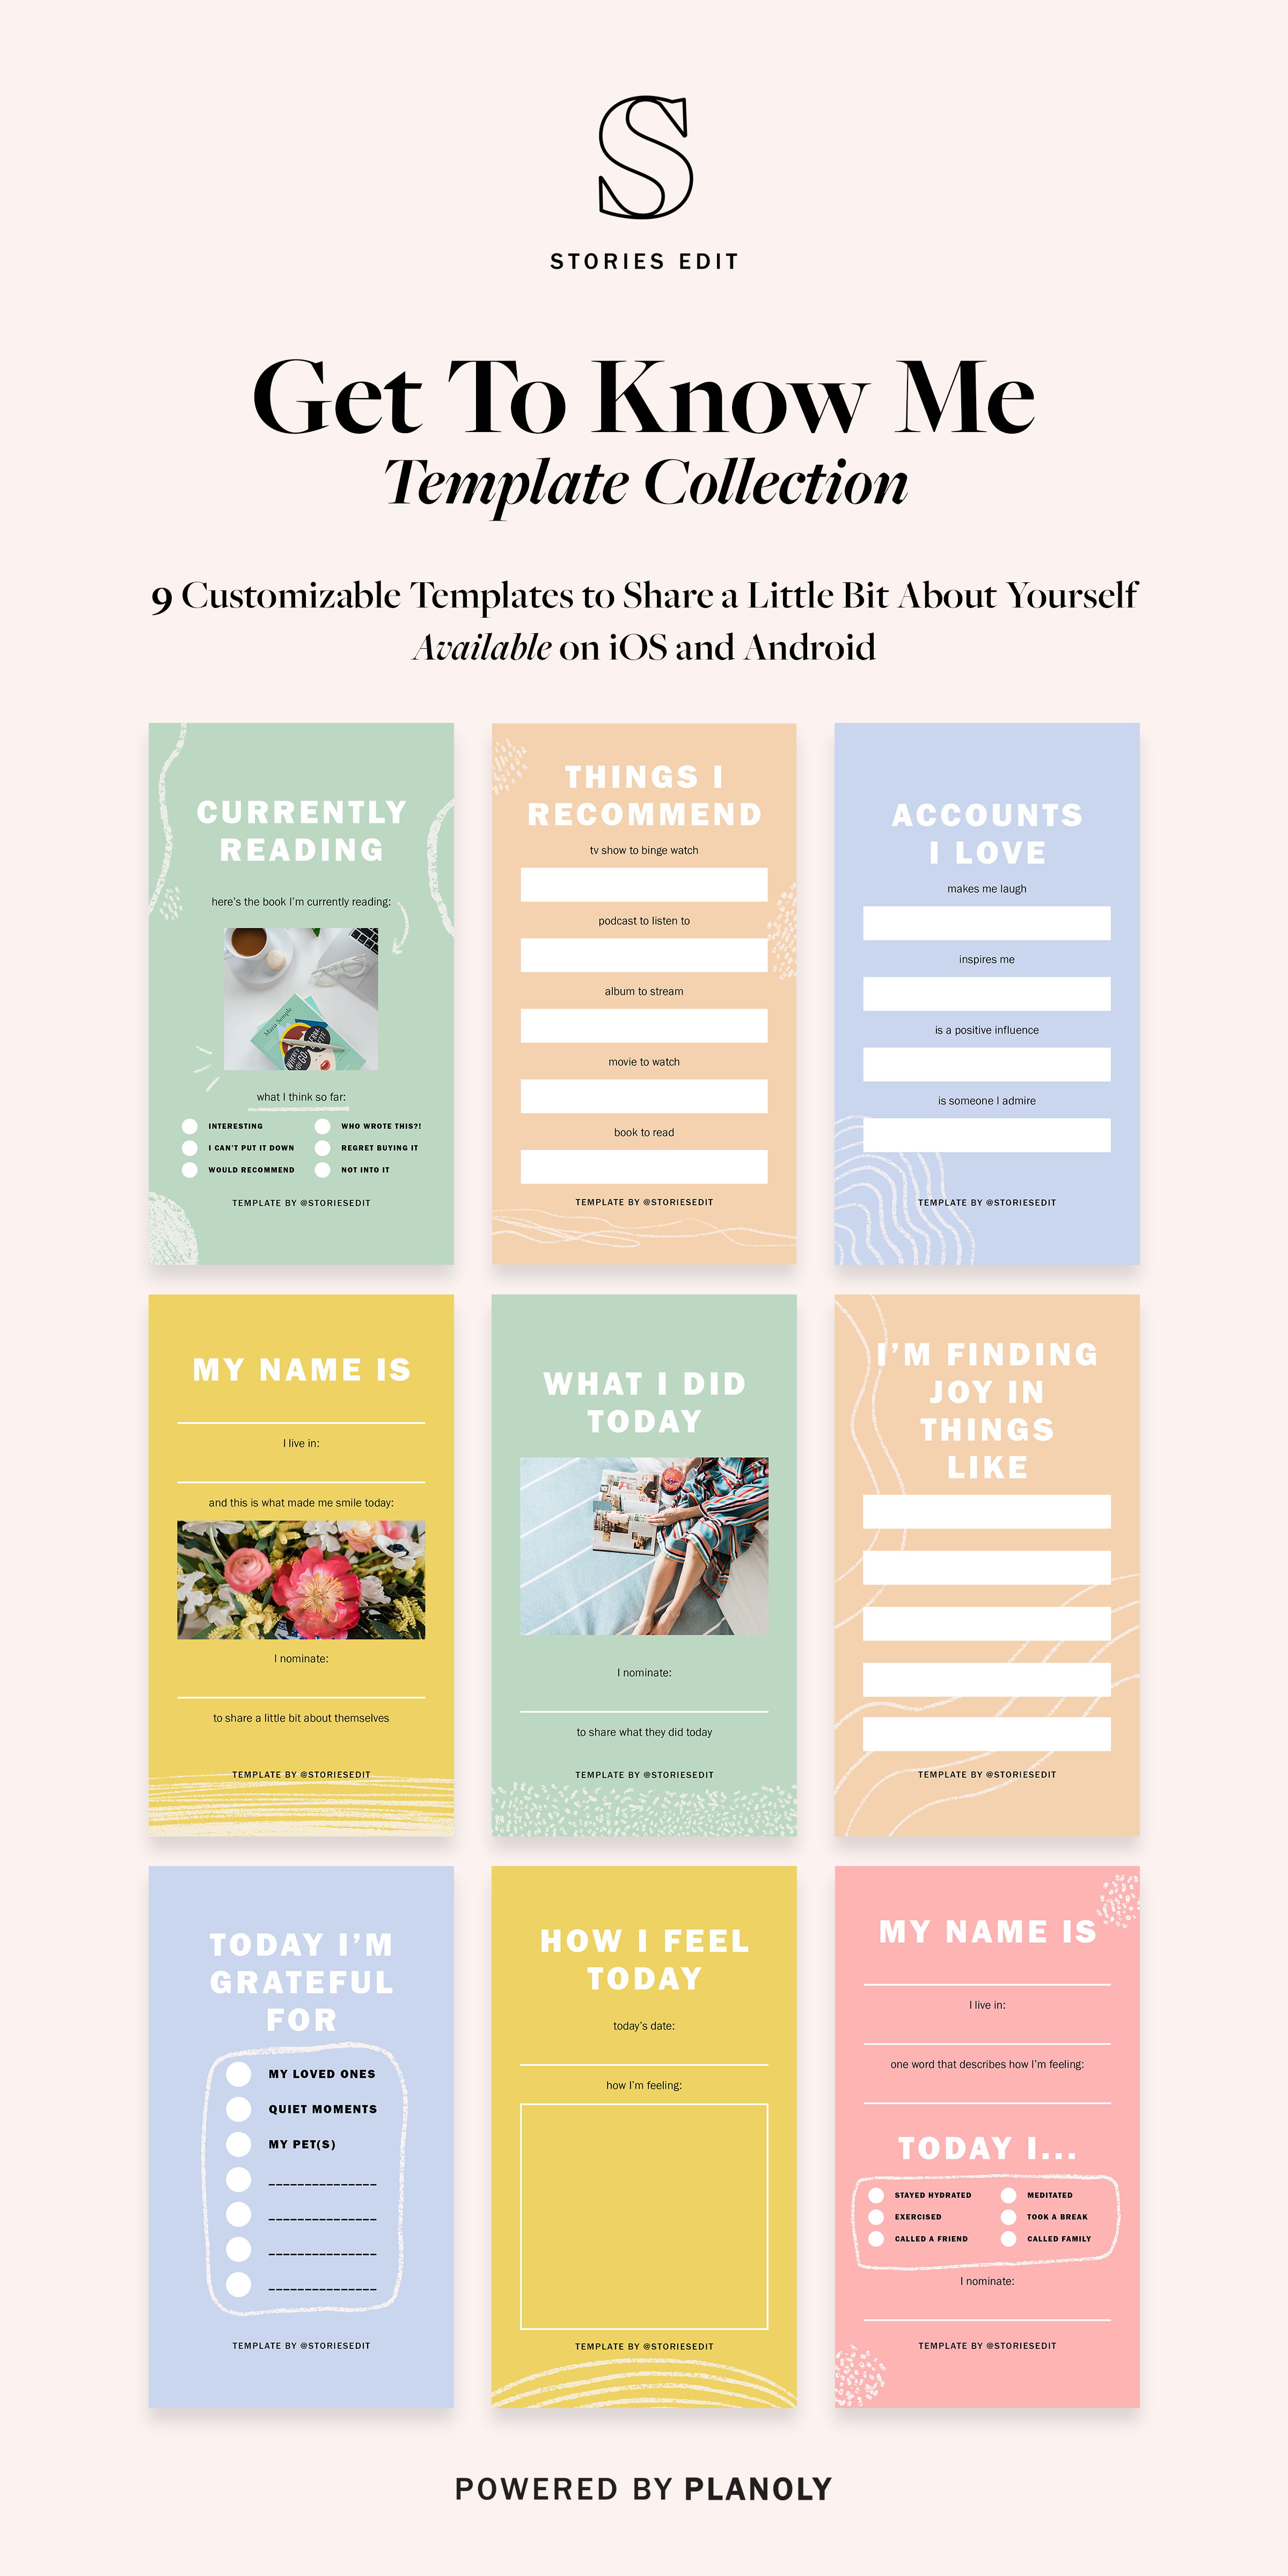 9 Free 'Get to Know Me' StoriesEdit Templates for Your Next Instagram Challenge